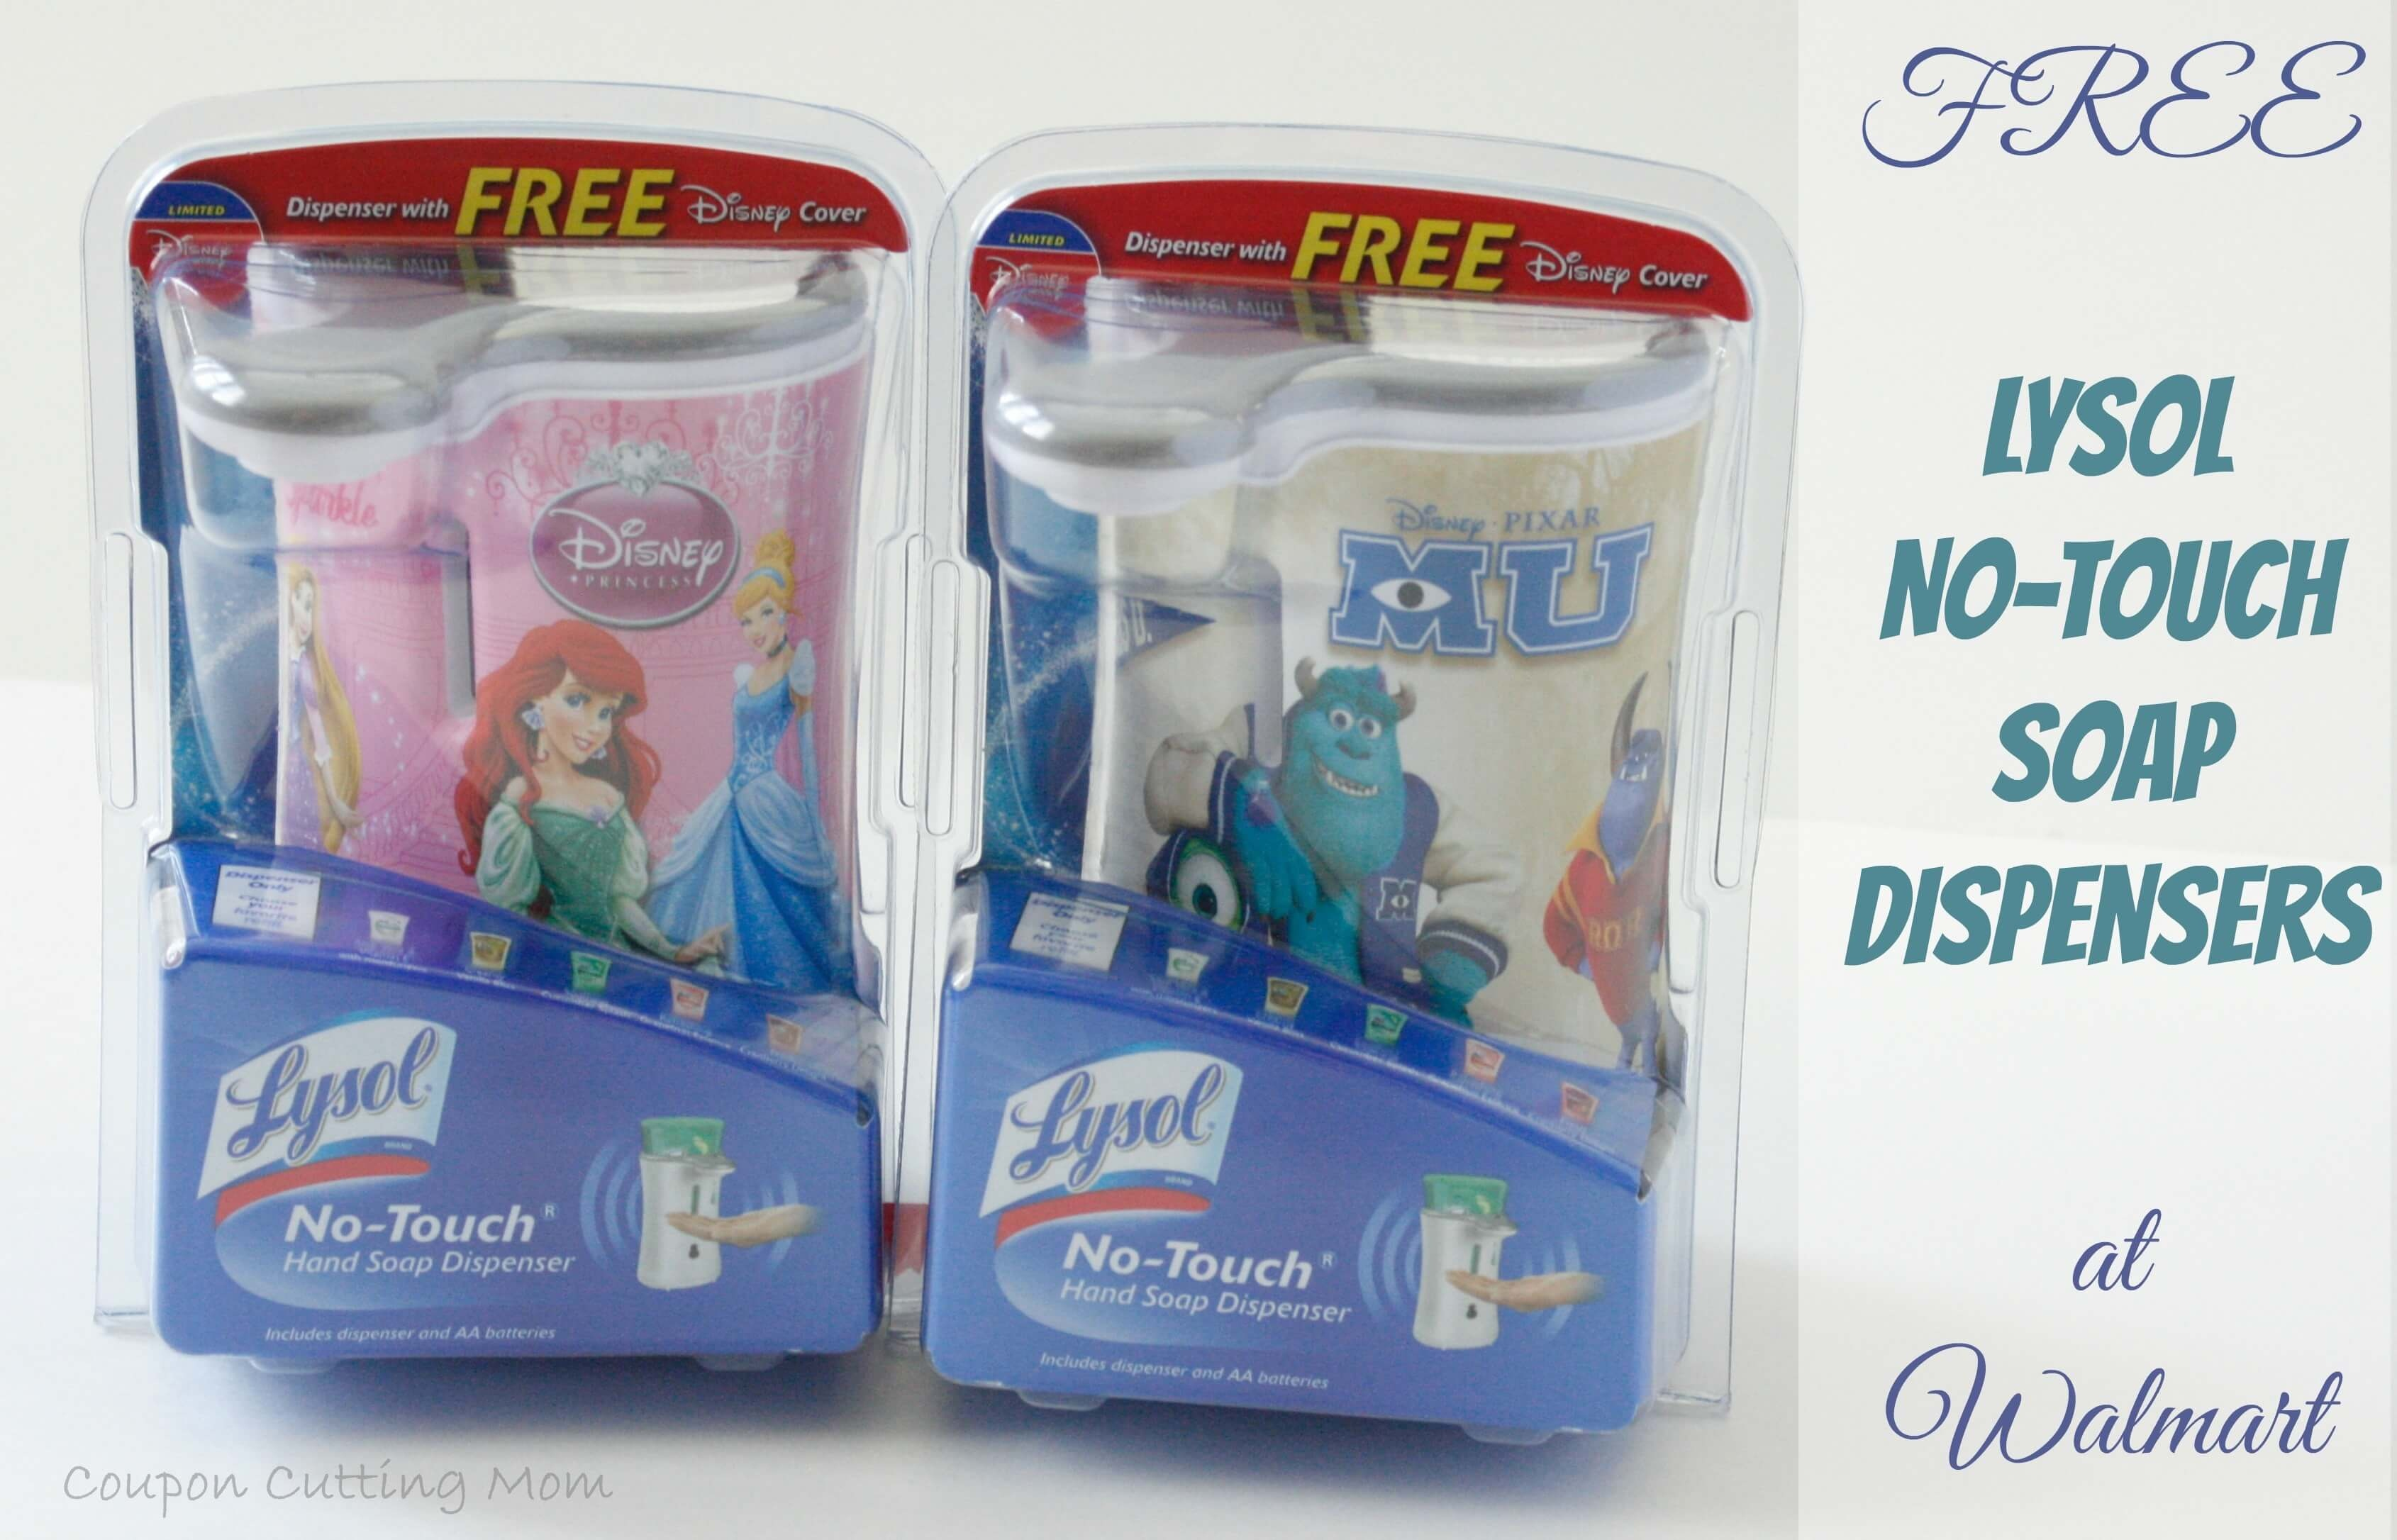 Walmart: Free Lysol No-Touch Soap Dispensers - Lysol Hands Free Soap Dispenser Printable Coupon